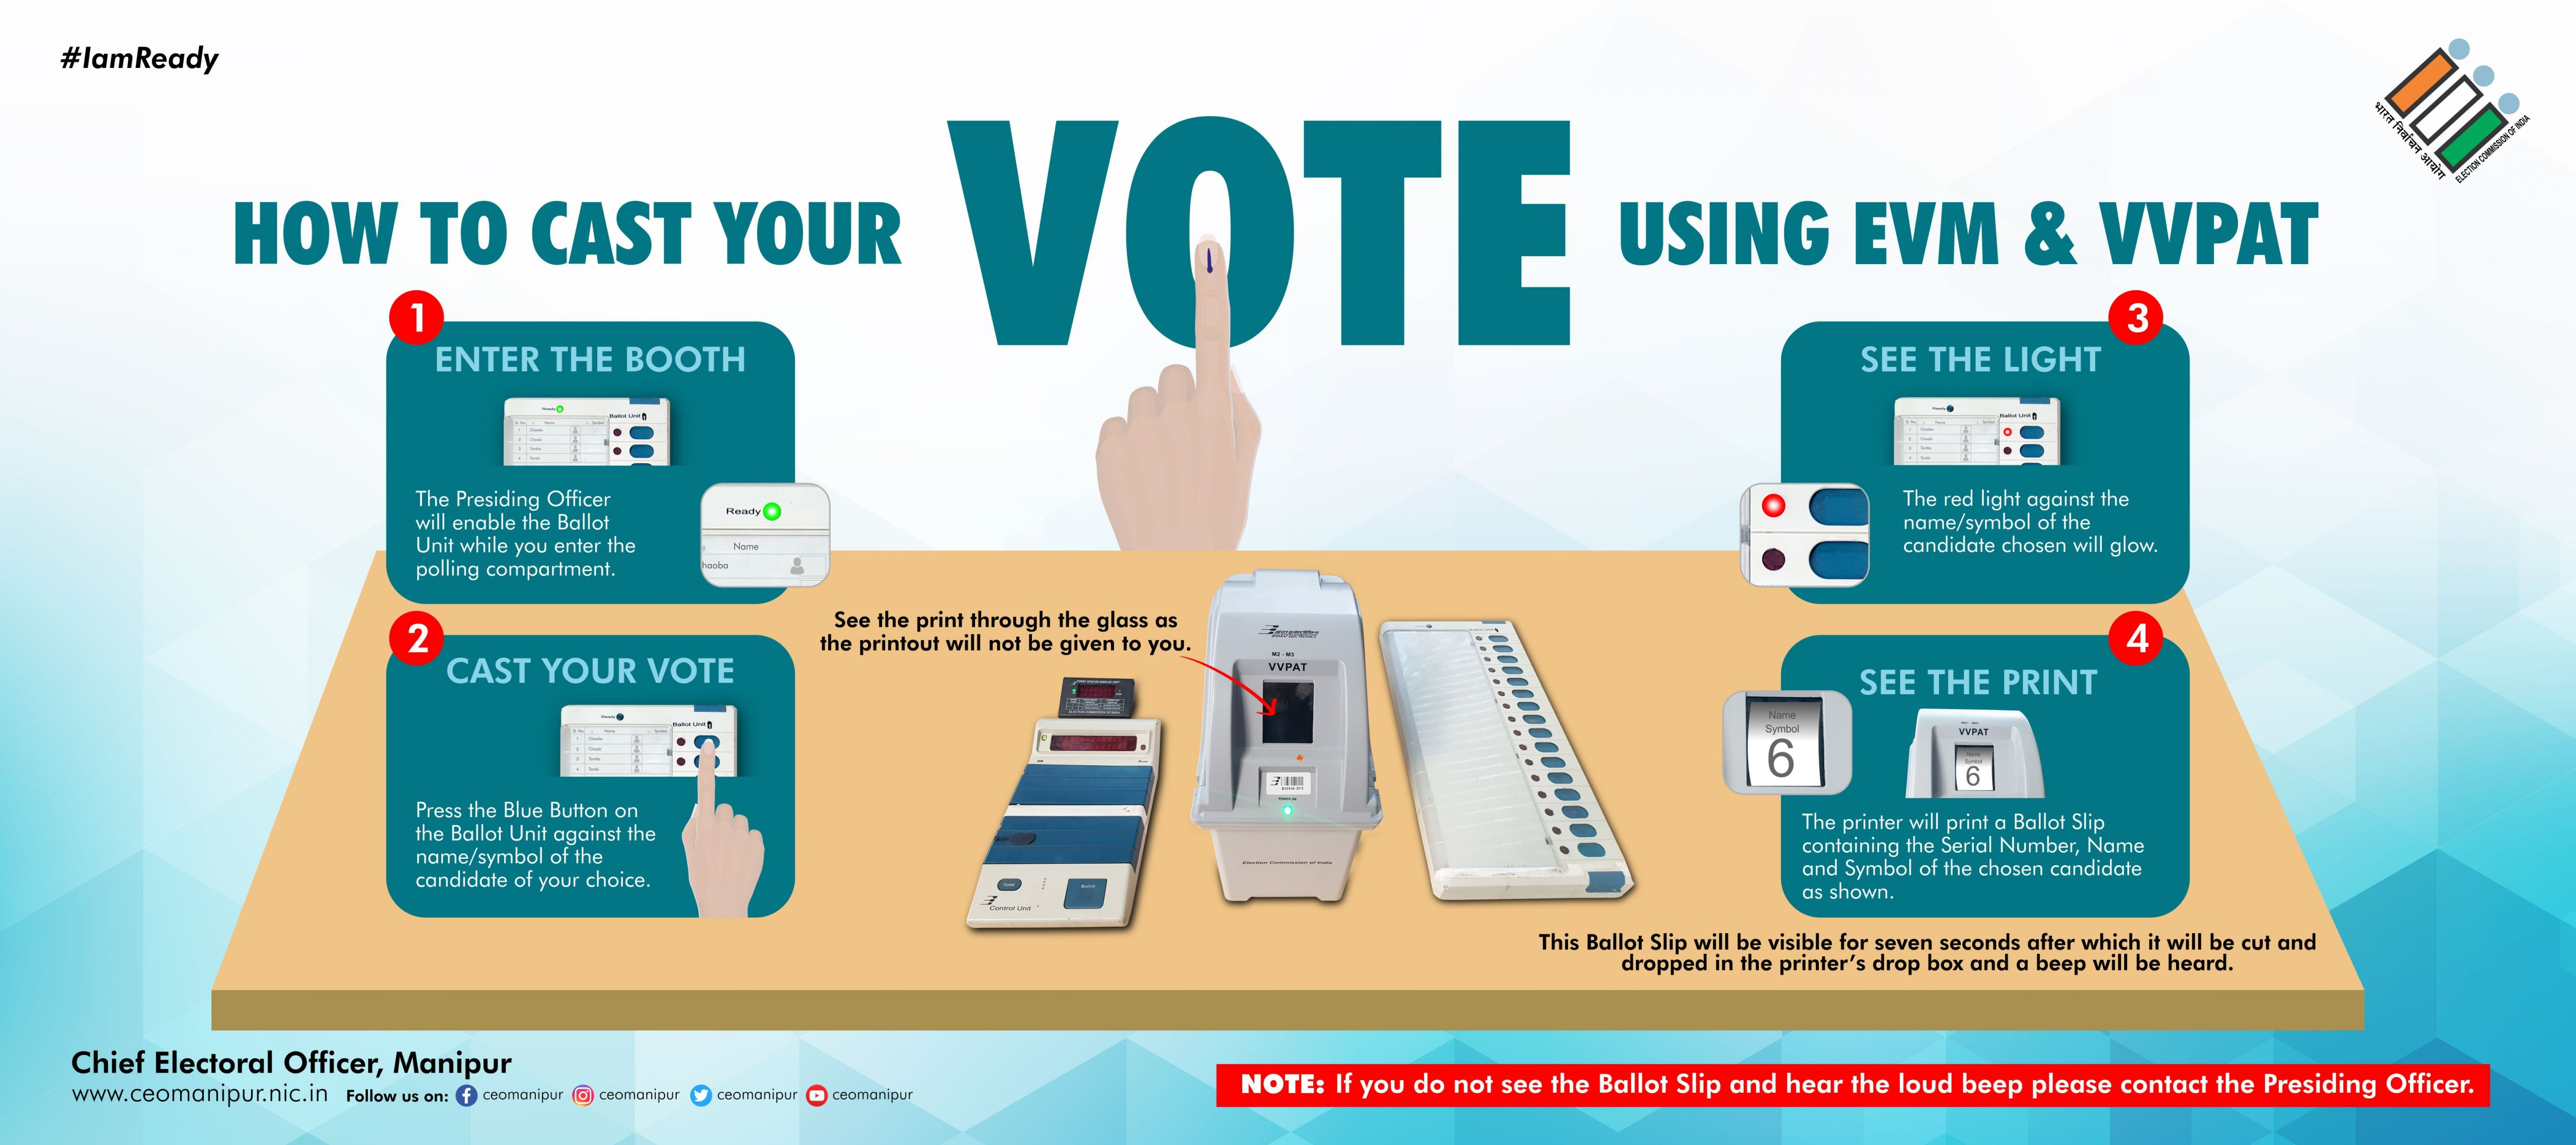 How to Cast Your Vote Using EVM and VVPAT